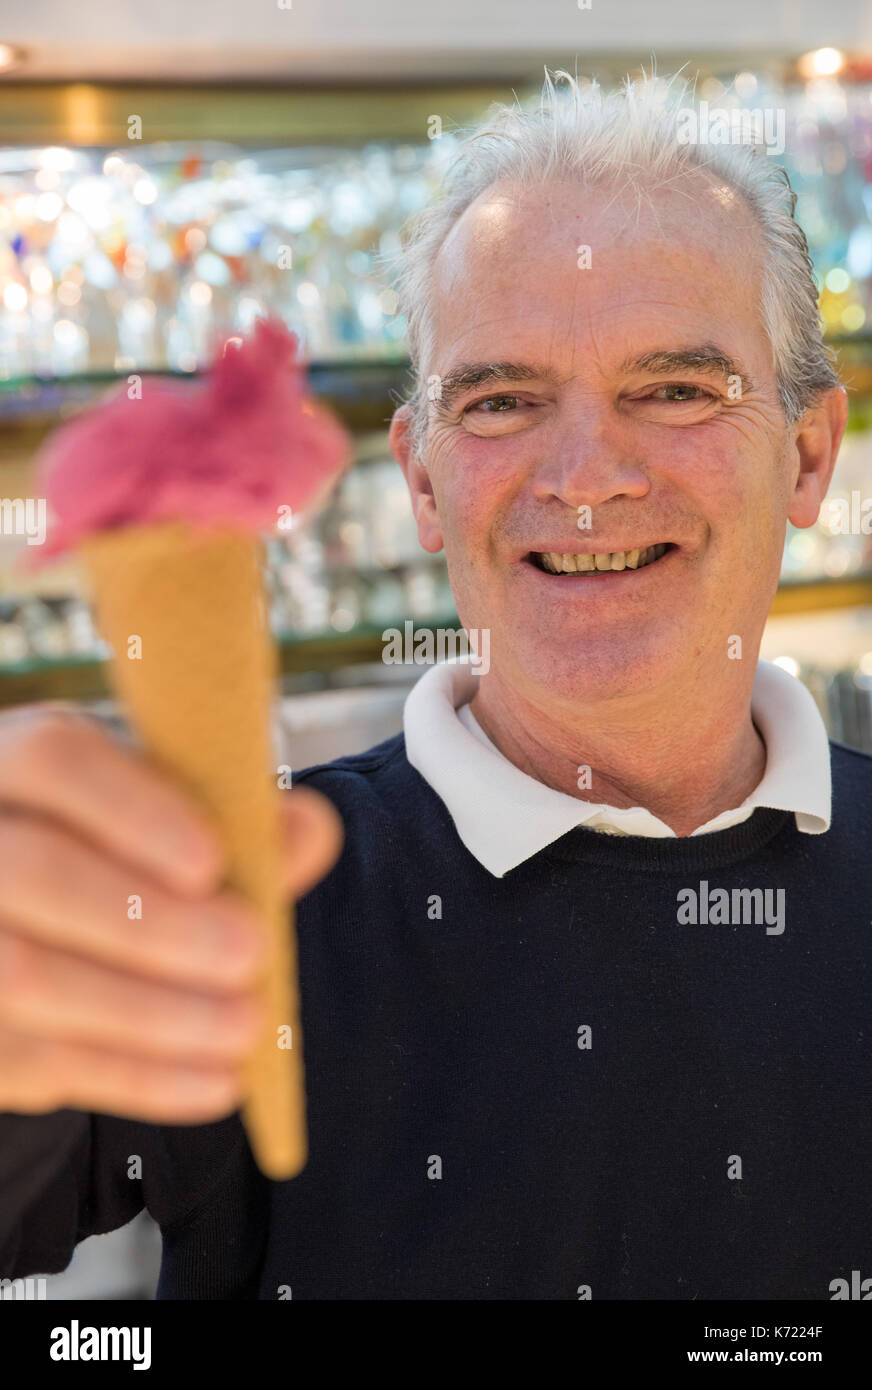 Schwabach, Germany. 14th Sep, 2017. Guido de Rocco in his ice cream parlour in Schwabach, Germany, 14 September 2017. A sorbet made with grapes and caramelised walnuts called 'Tributo alla Serenissima' created by Rocco recently took second place in the international ice cream competition Gelato World Tour held in Italy. Photo: Daniel Karmann/dpa/Alamy Live News - Stock Image